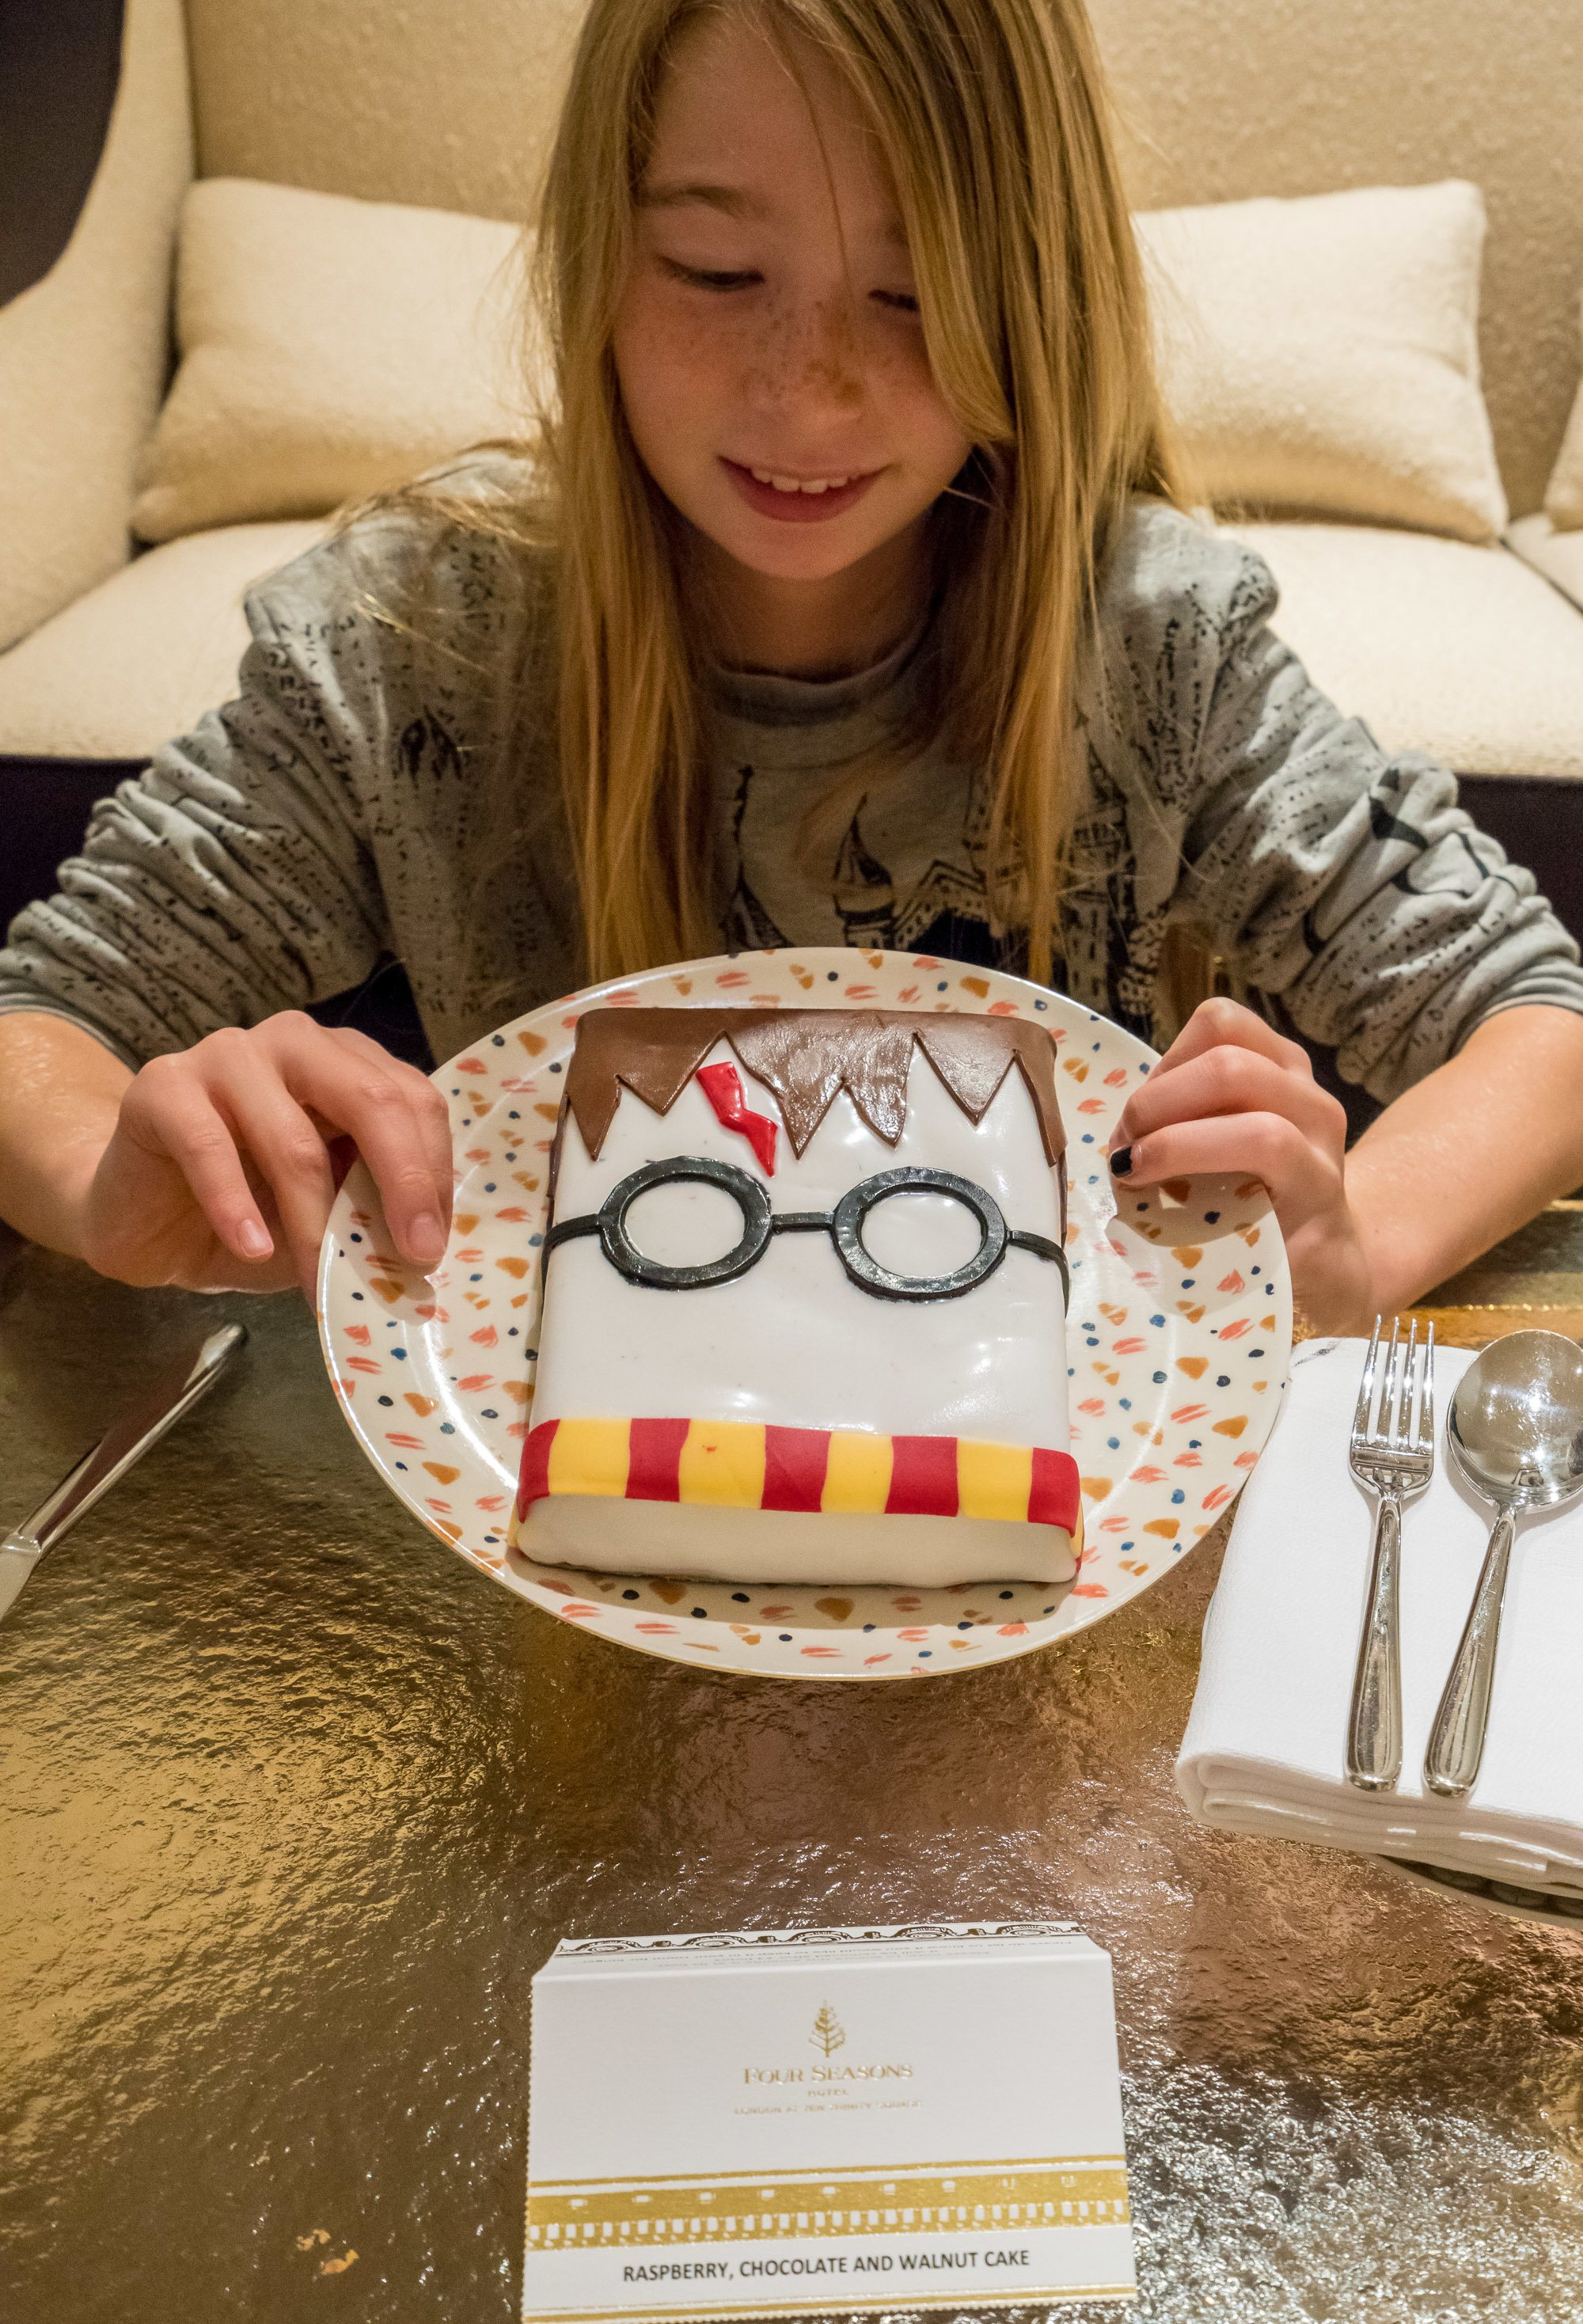 An amazing Harry Potter cake made by Four Seasons Hotel London at Ten Trinity Square.